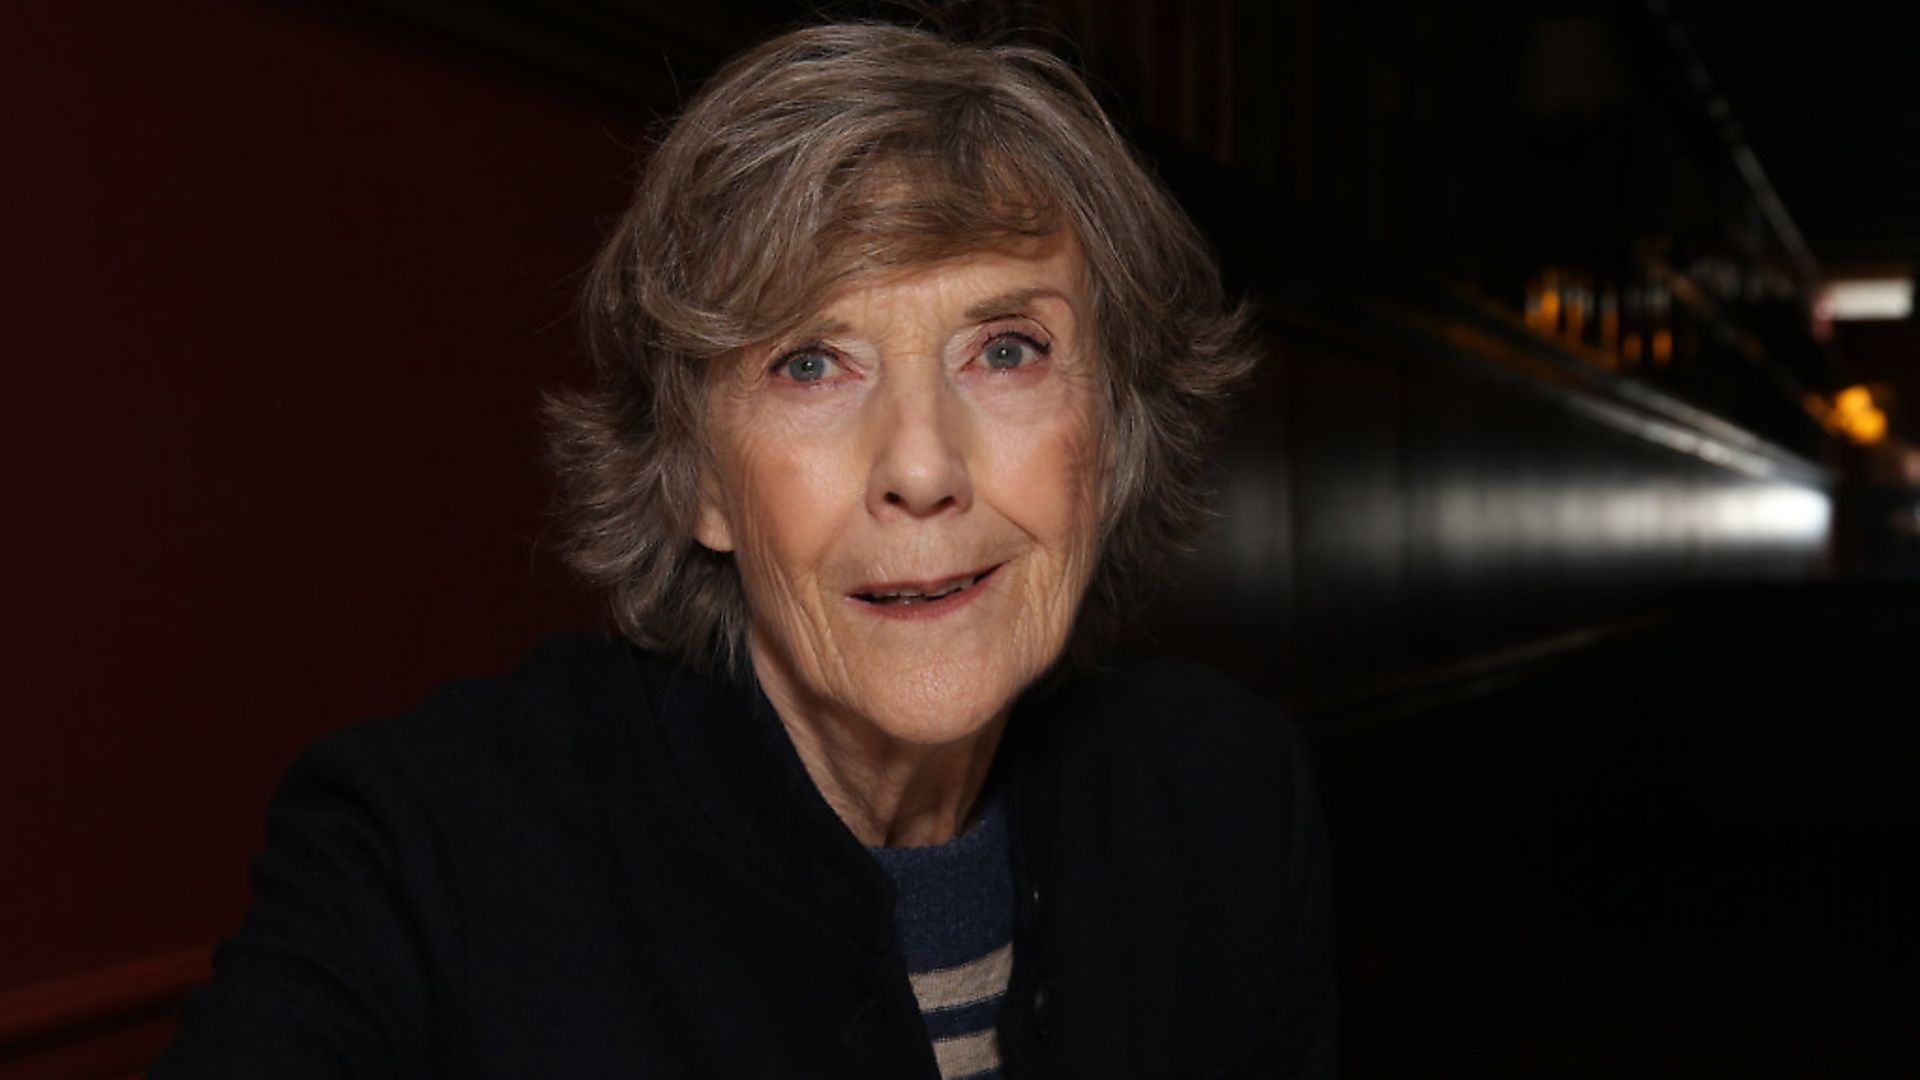 NEW YORK, NY - NOVEMBER 15:  Dame Eileen Atkins during the Eileen Atkins portrait unveiling at Sardi's on November 15, 2019 in New York City.  (Photo by Walter McBride/Getty Images) - Credit: Getty Images